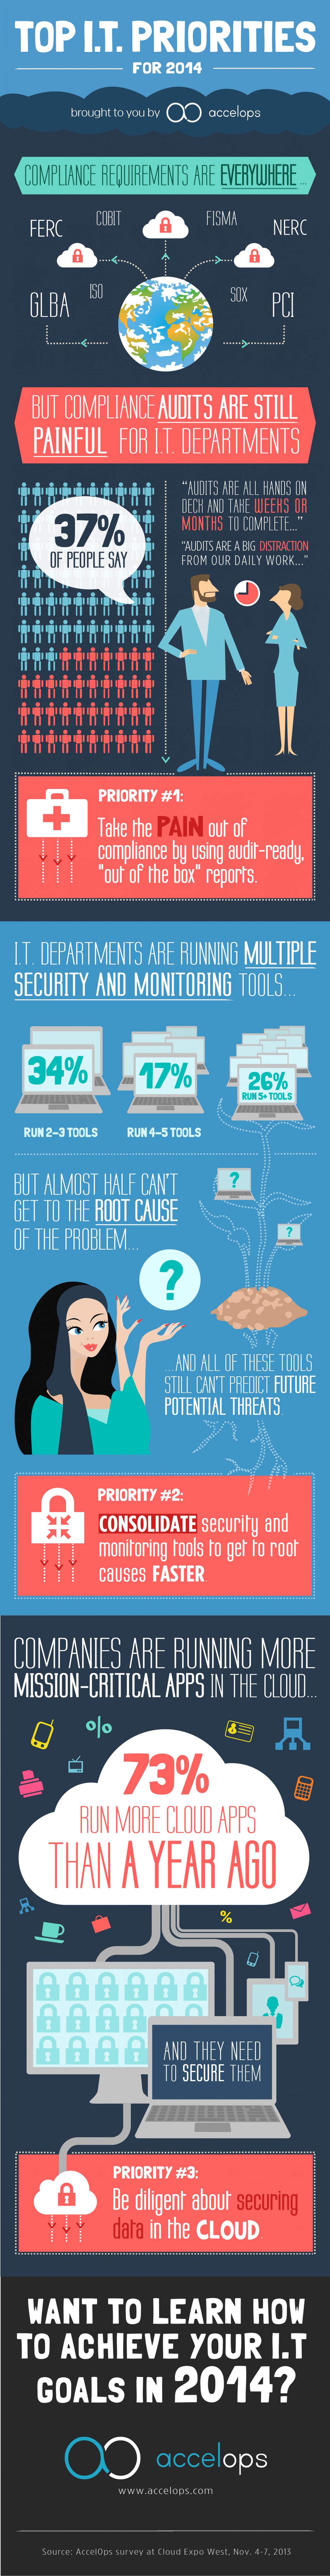 Top I.T. Priorities Infographic marketing, Event